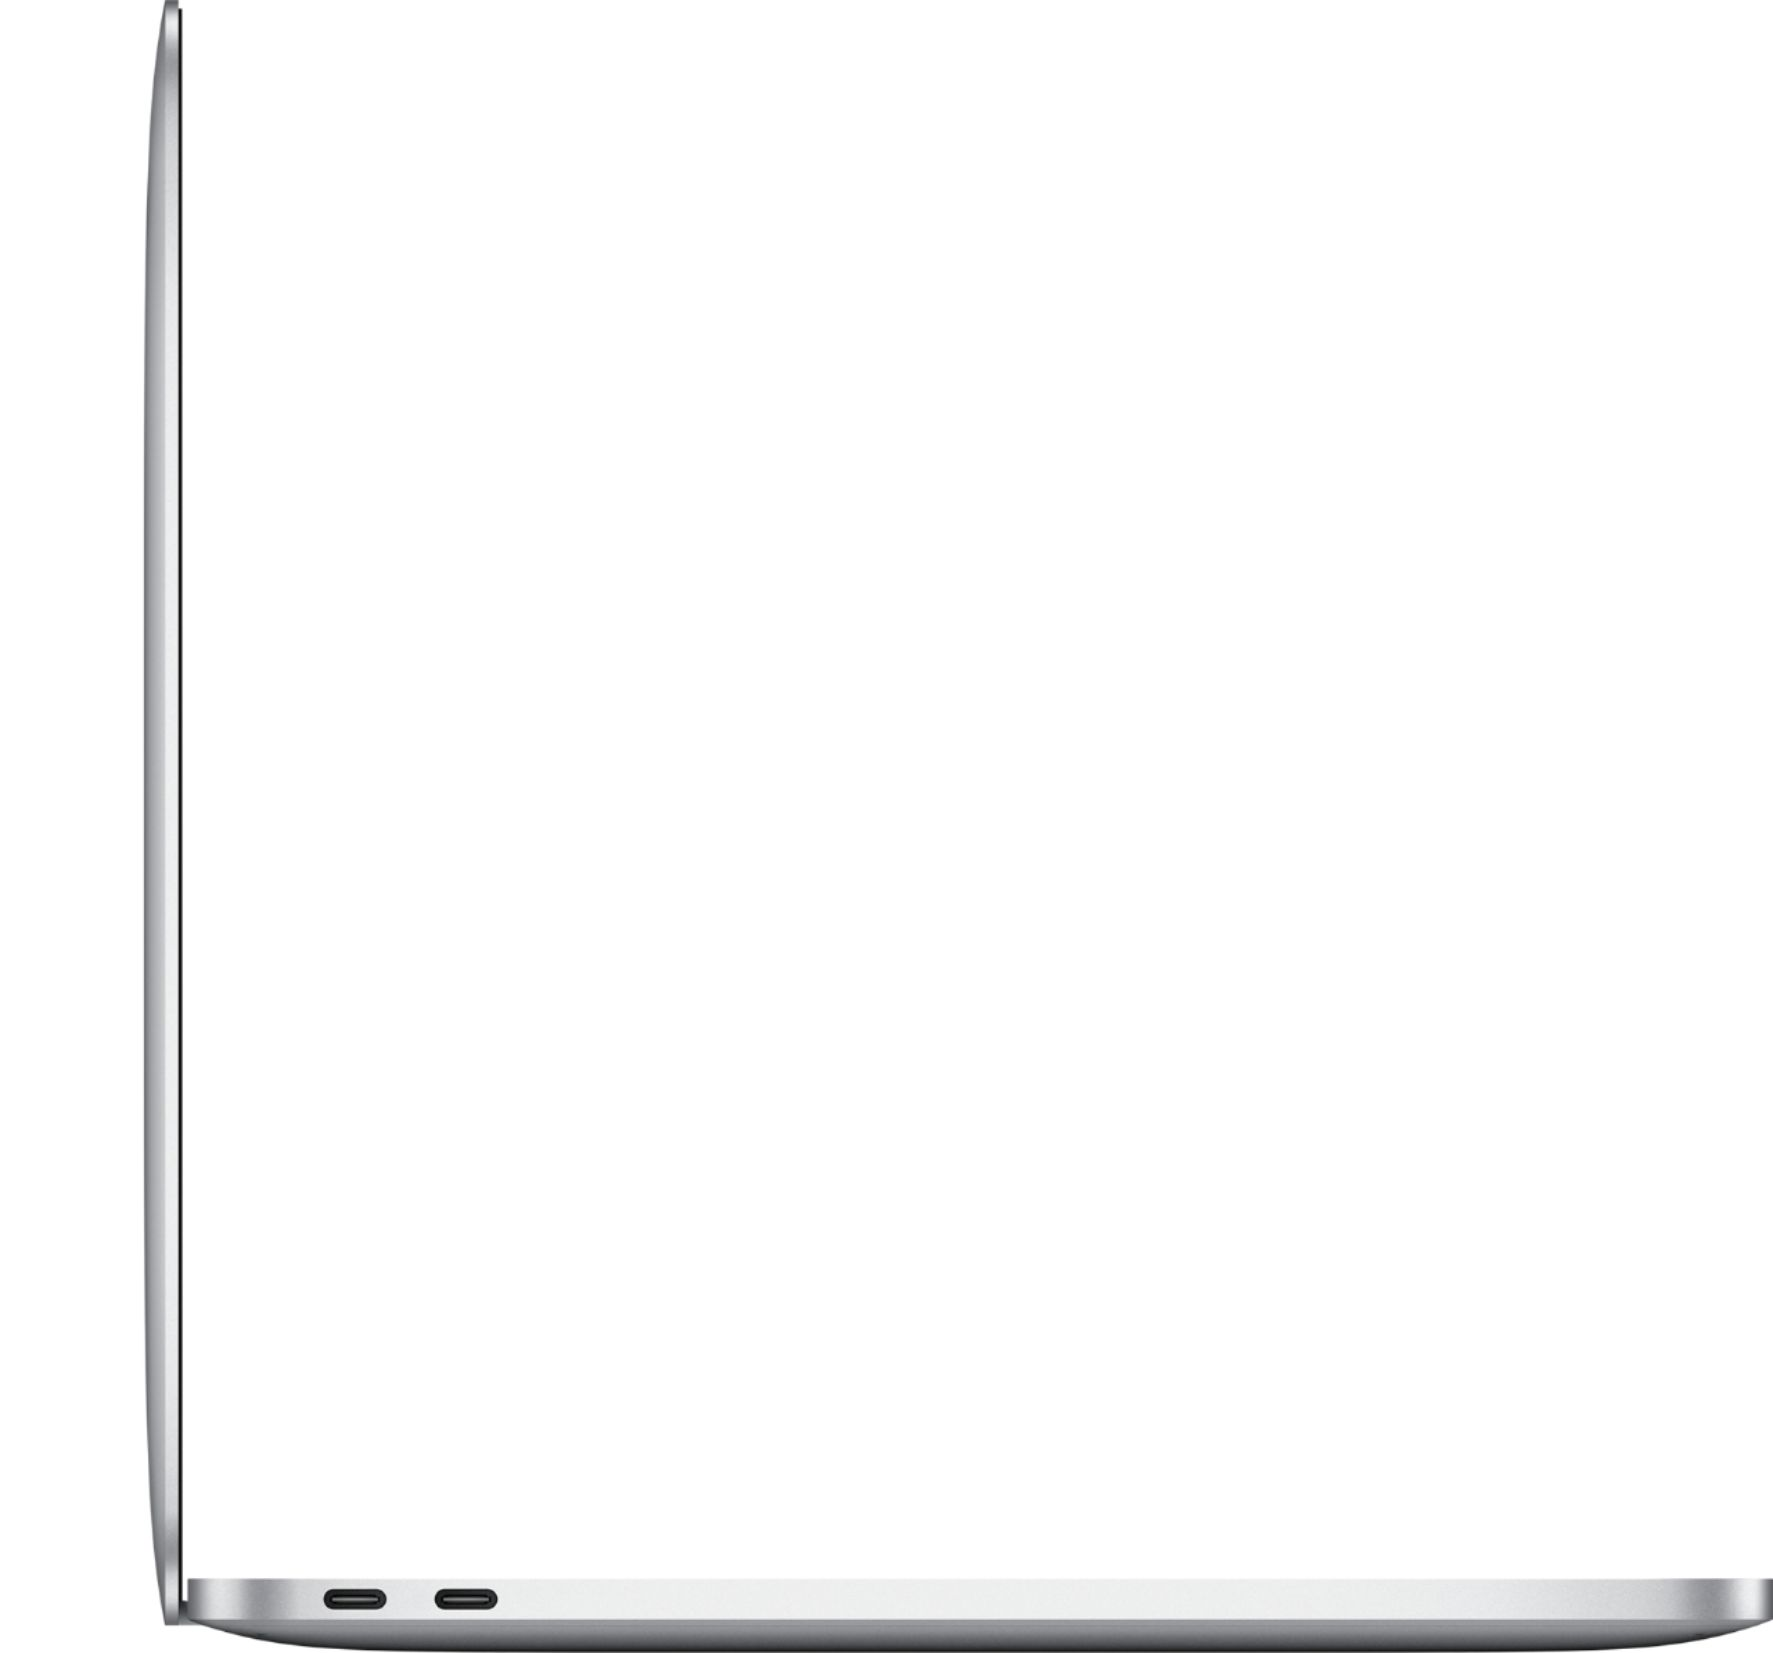 """Alt View Zoom 10. Apple - MacBook Pro - 13"""" Display with Touch Bar - Intel Core i5 - 16GB Memory - 256GB SSD - Silver."""